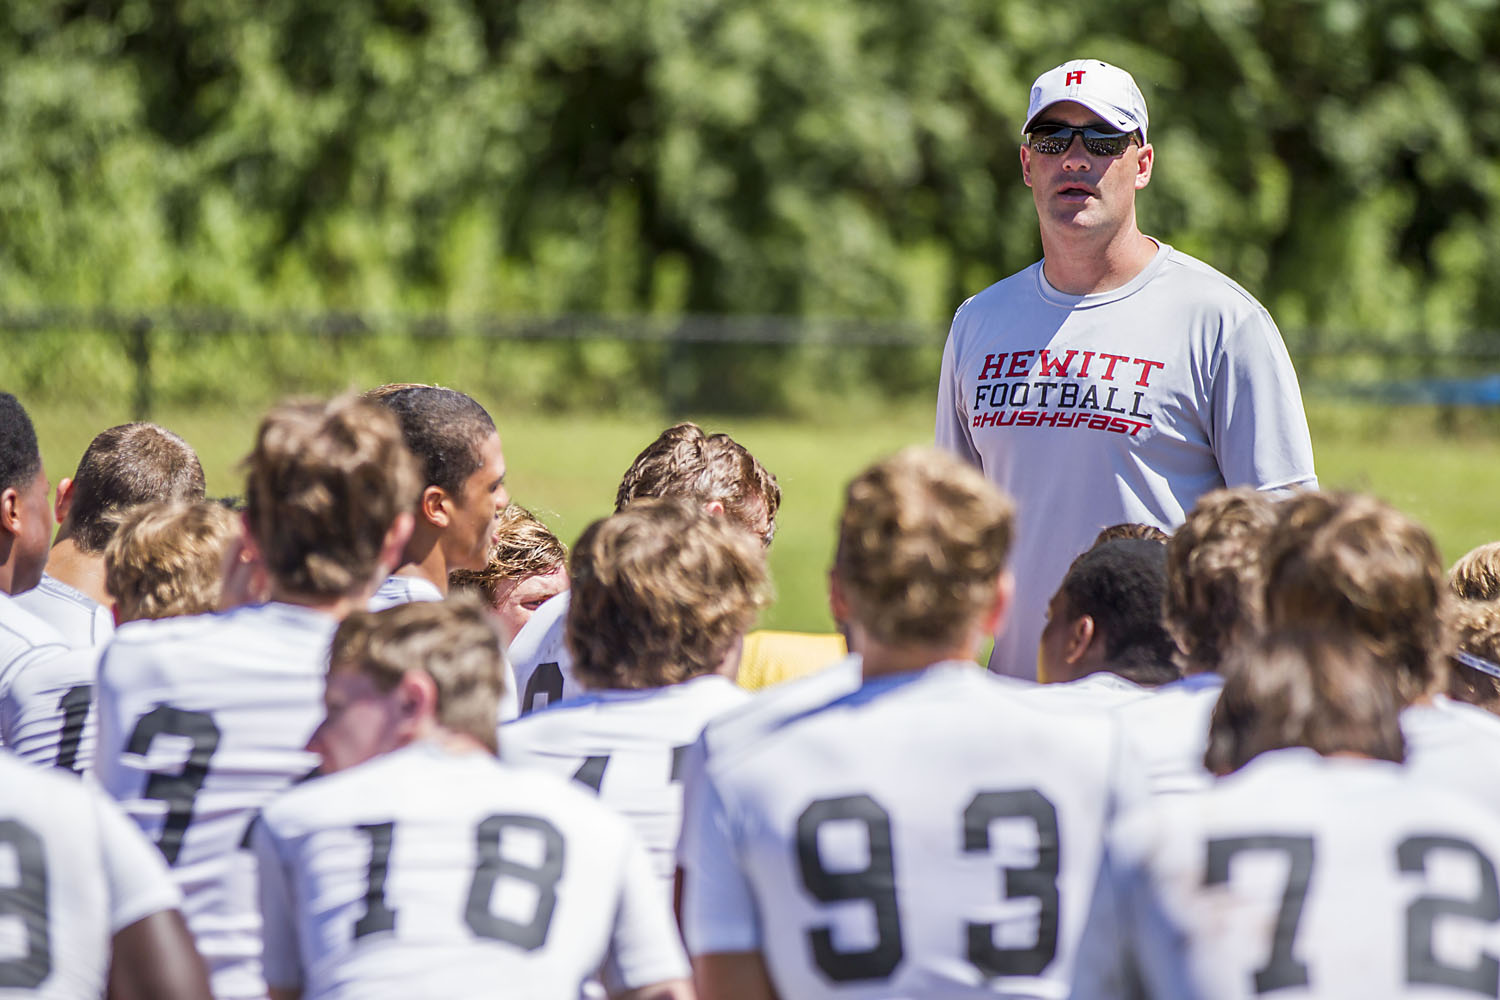 Pool schedule set for Huskies, Cougars at 7on7 championship at Hoover